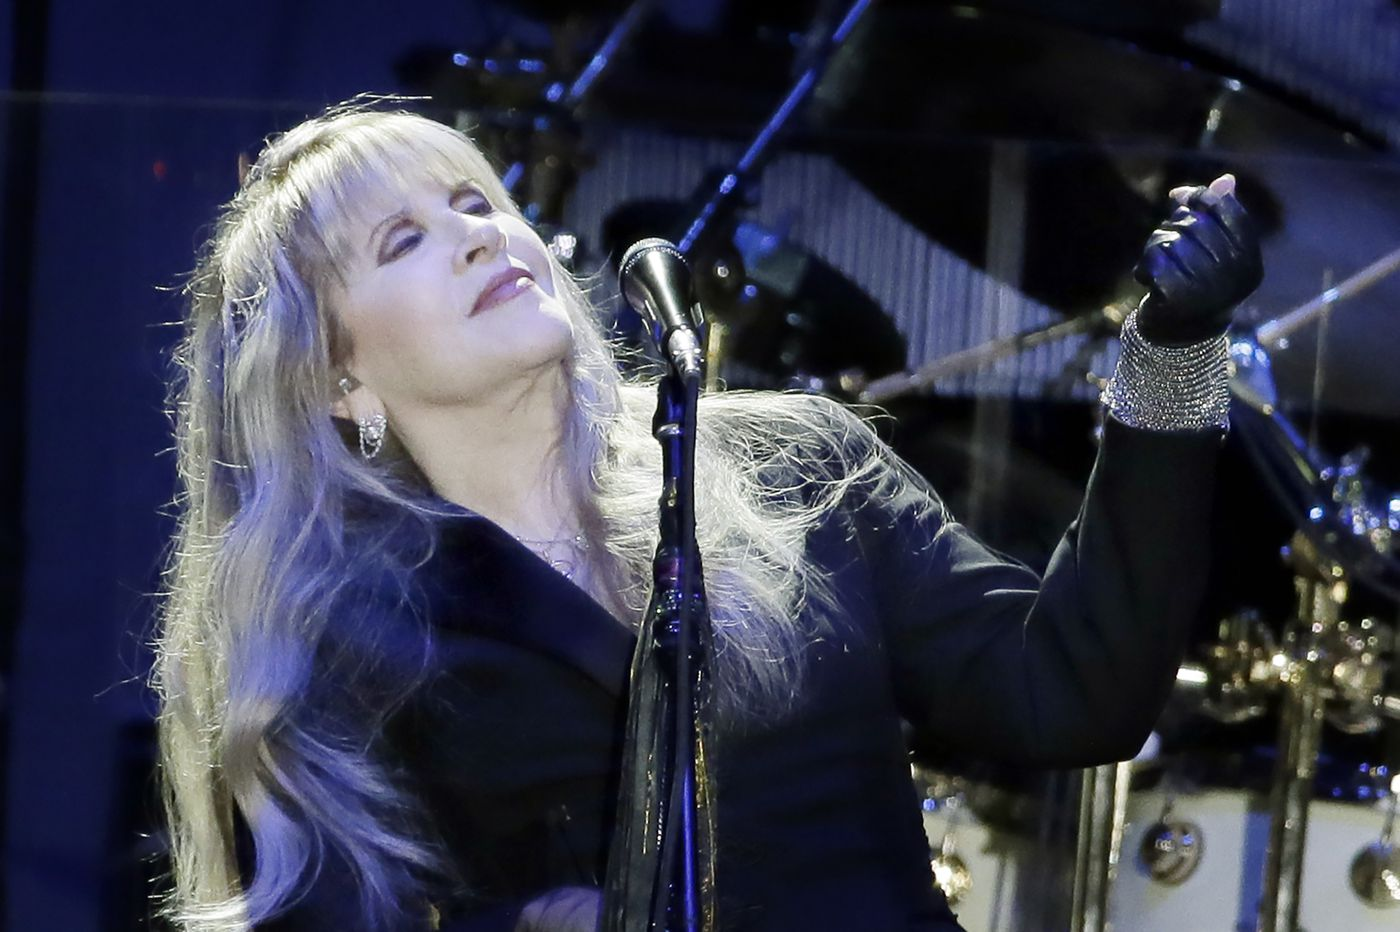 Fleetwood Mac's show at the Wells Fargo Center postponed due to illness